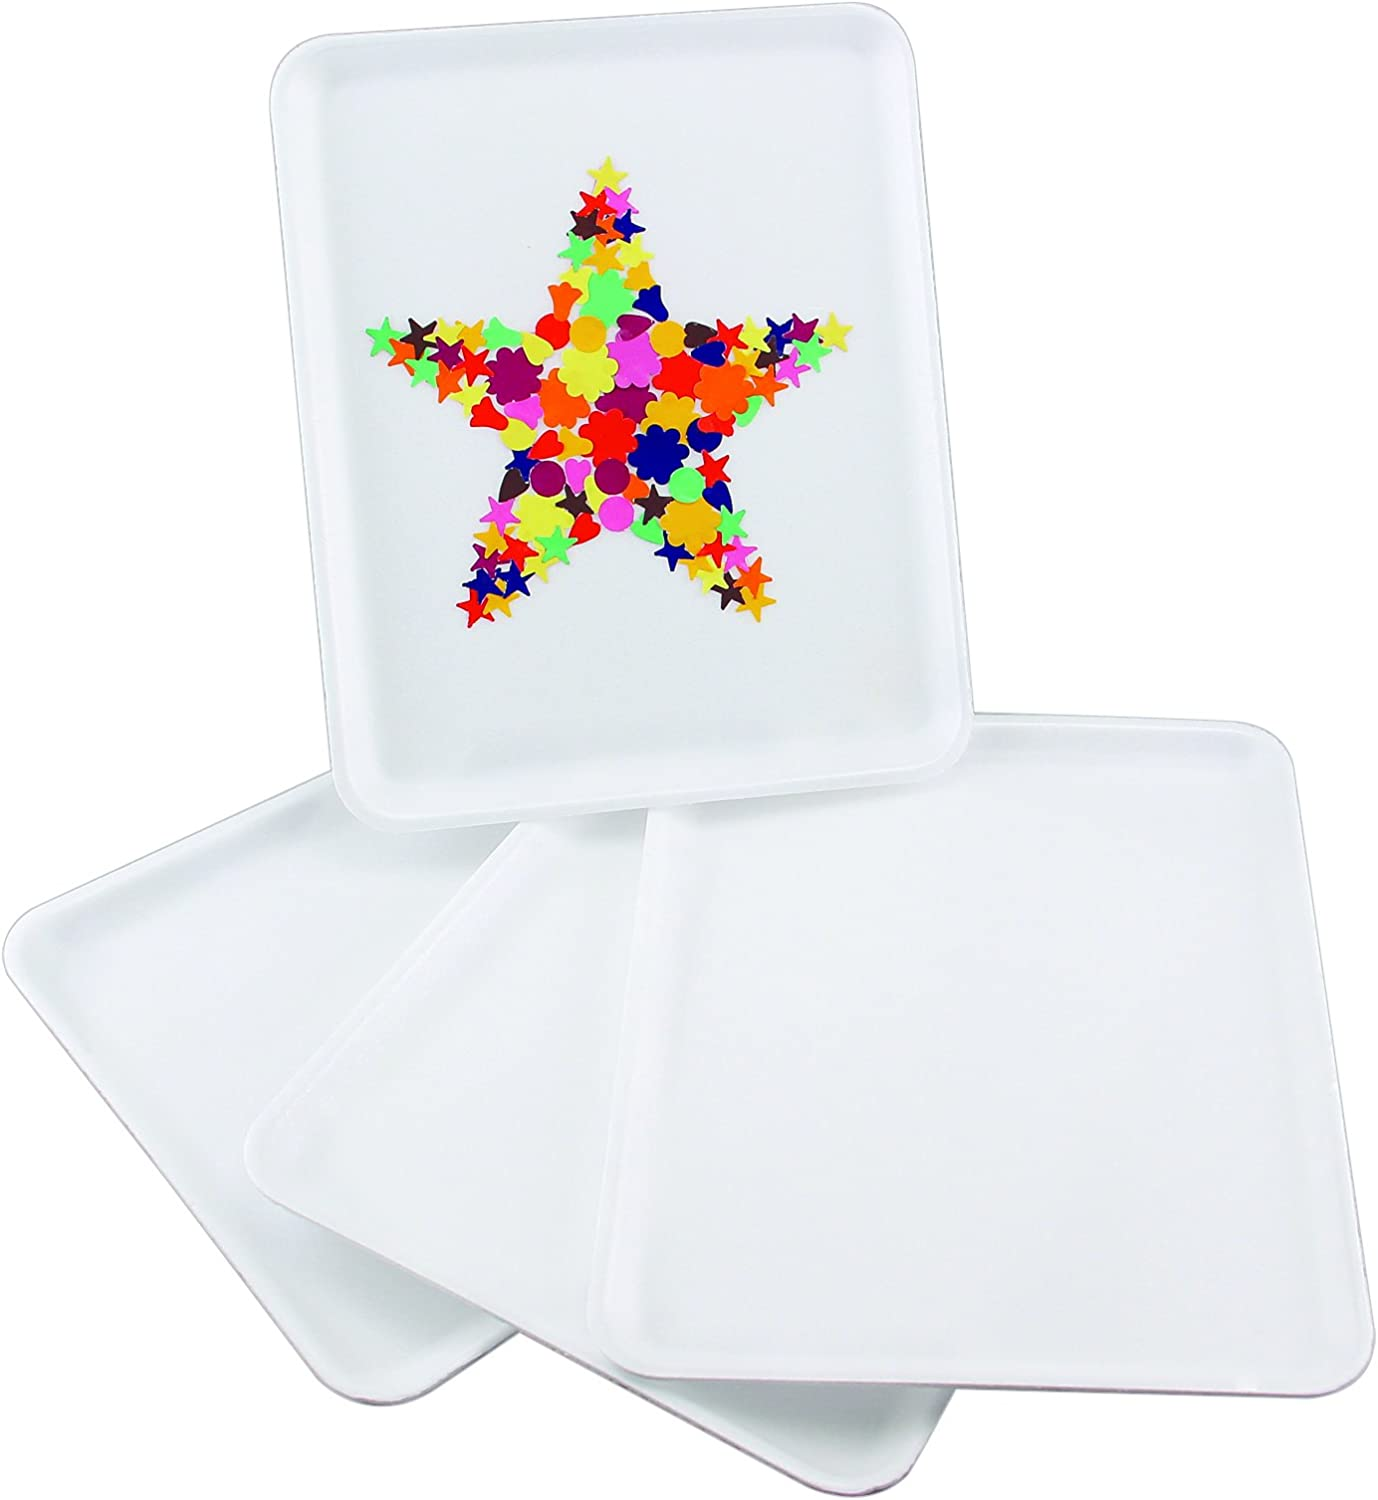 Hygloss Collages and Crafts Foam 10 Fashionable Trays Max 46% OFF Pieces White